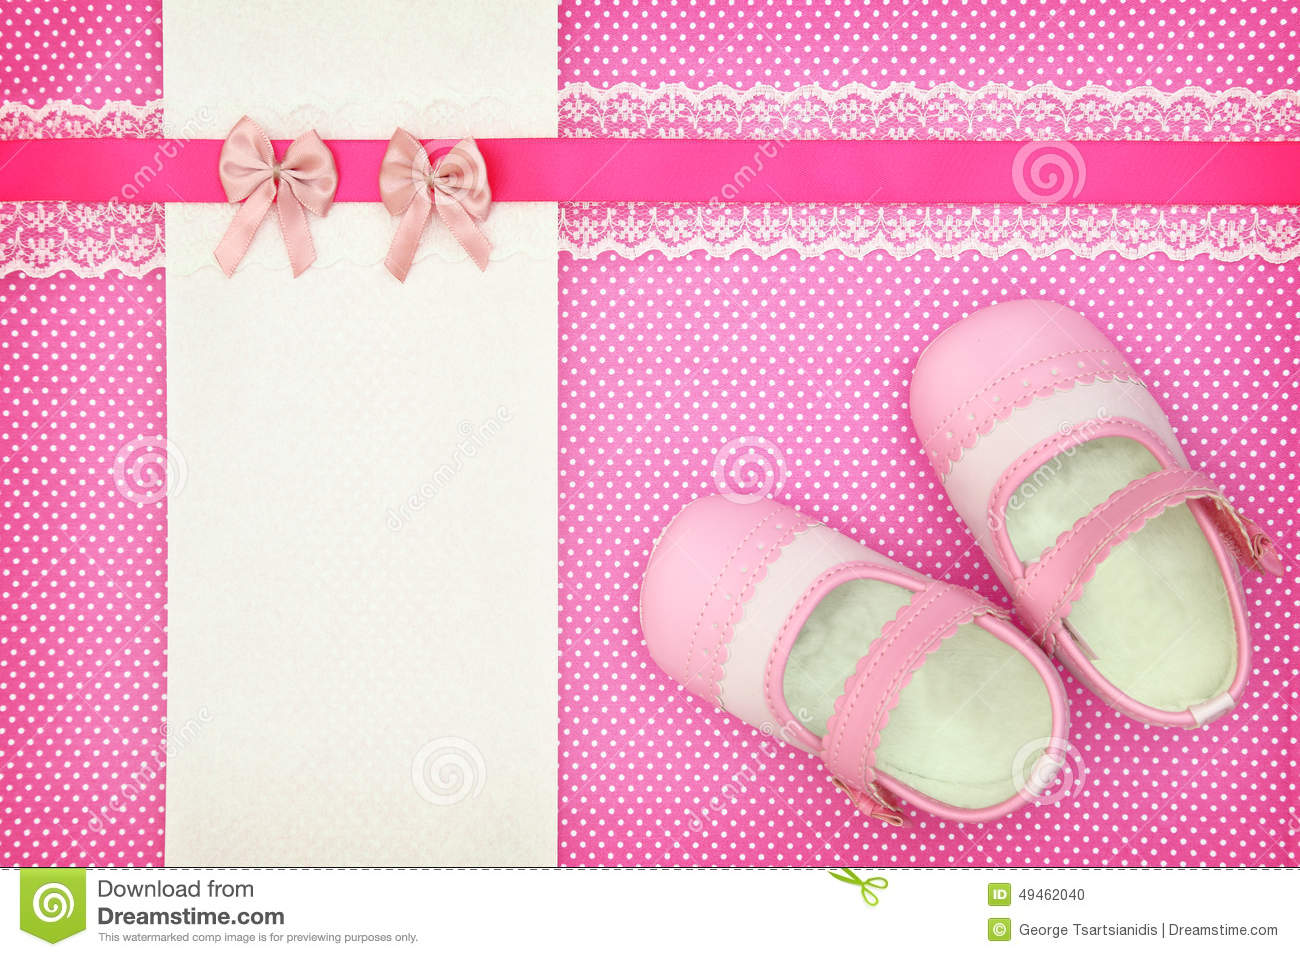 Baby Shoes And Blank Banner Stock Photo - Image: 49462040